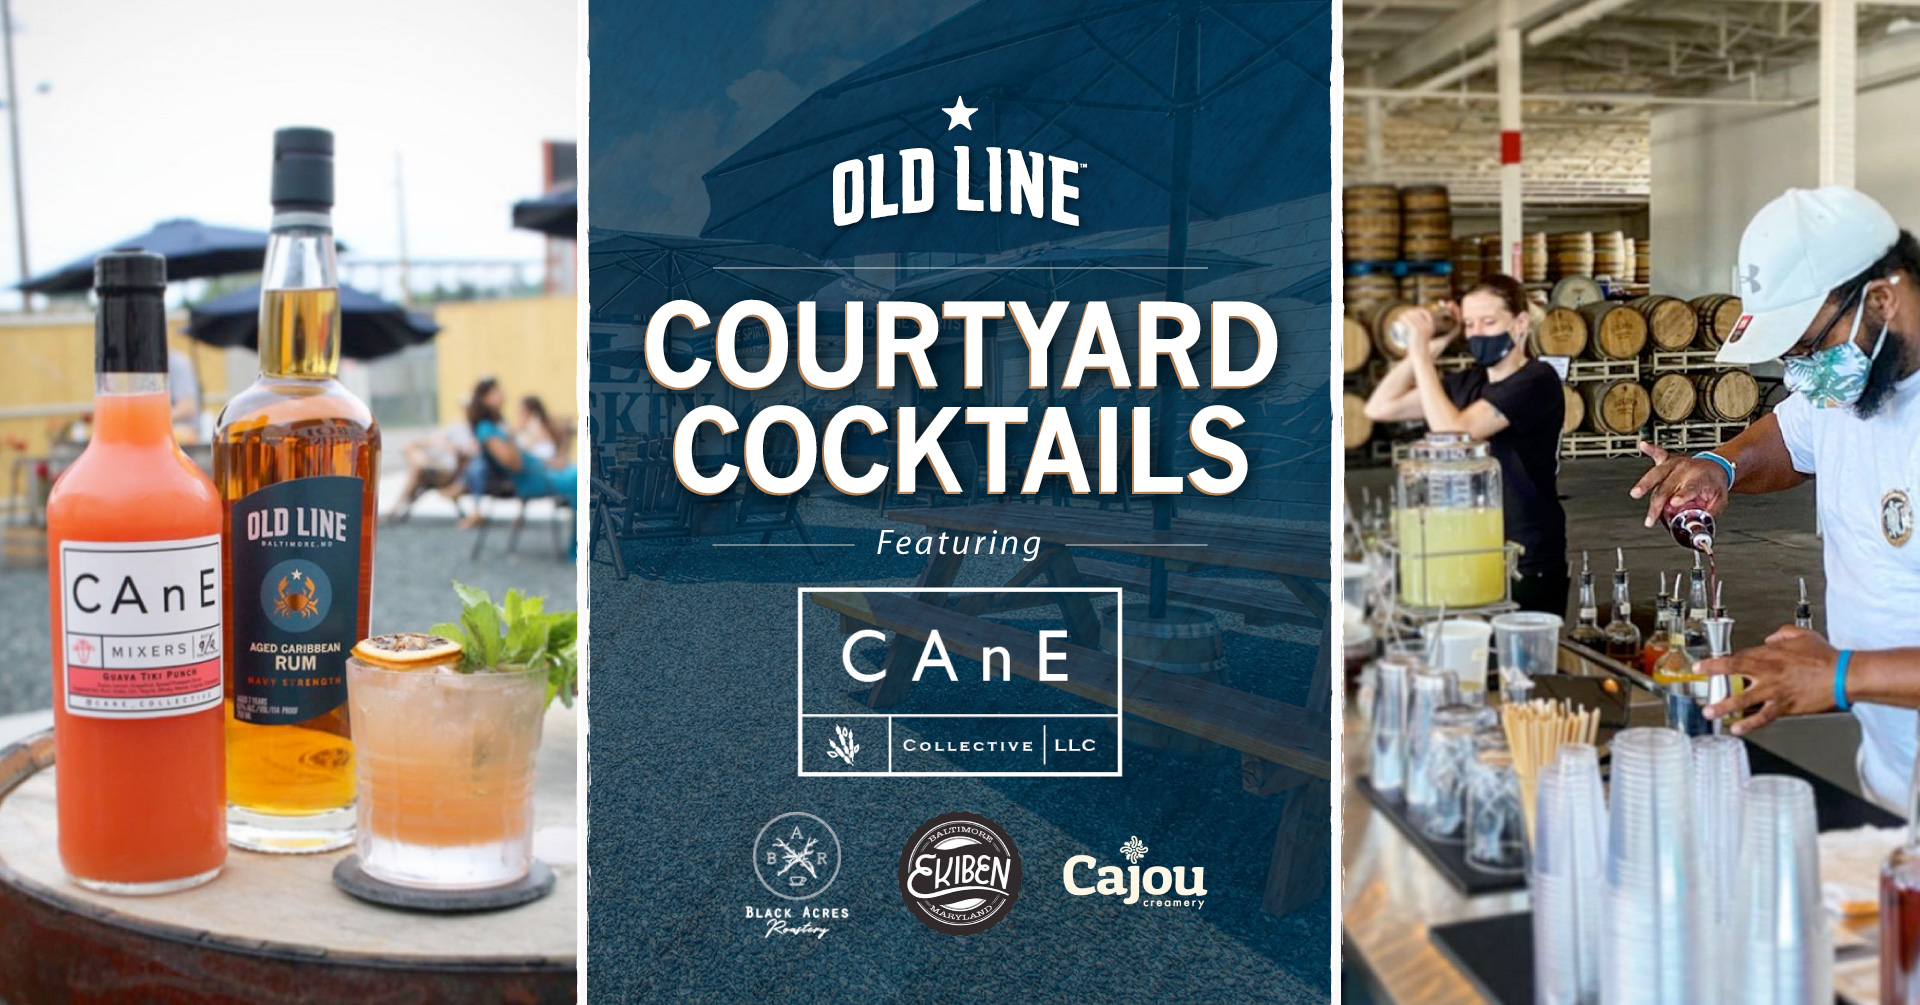 Courtyard Cocktails Cane Collective